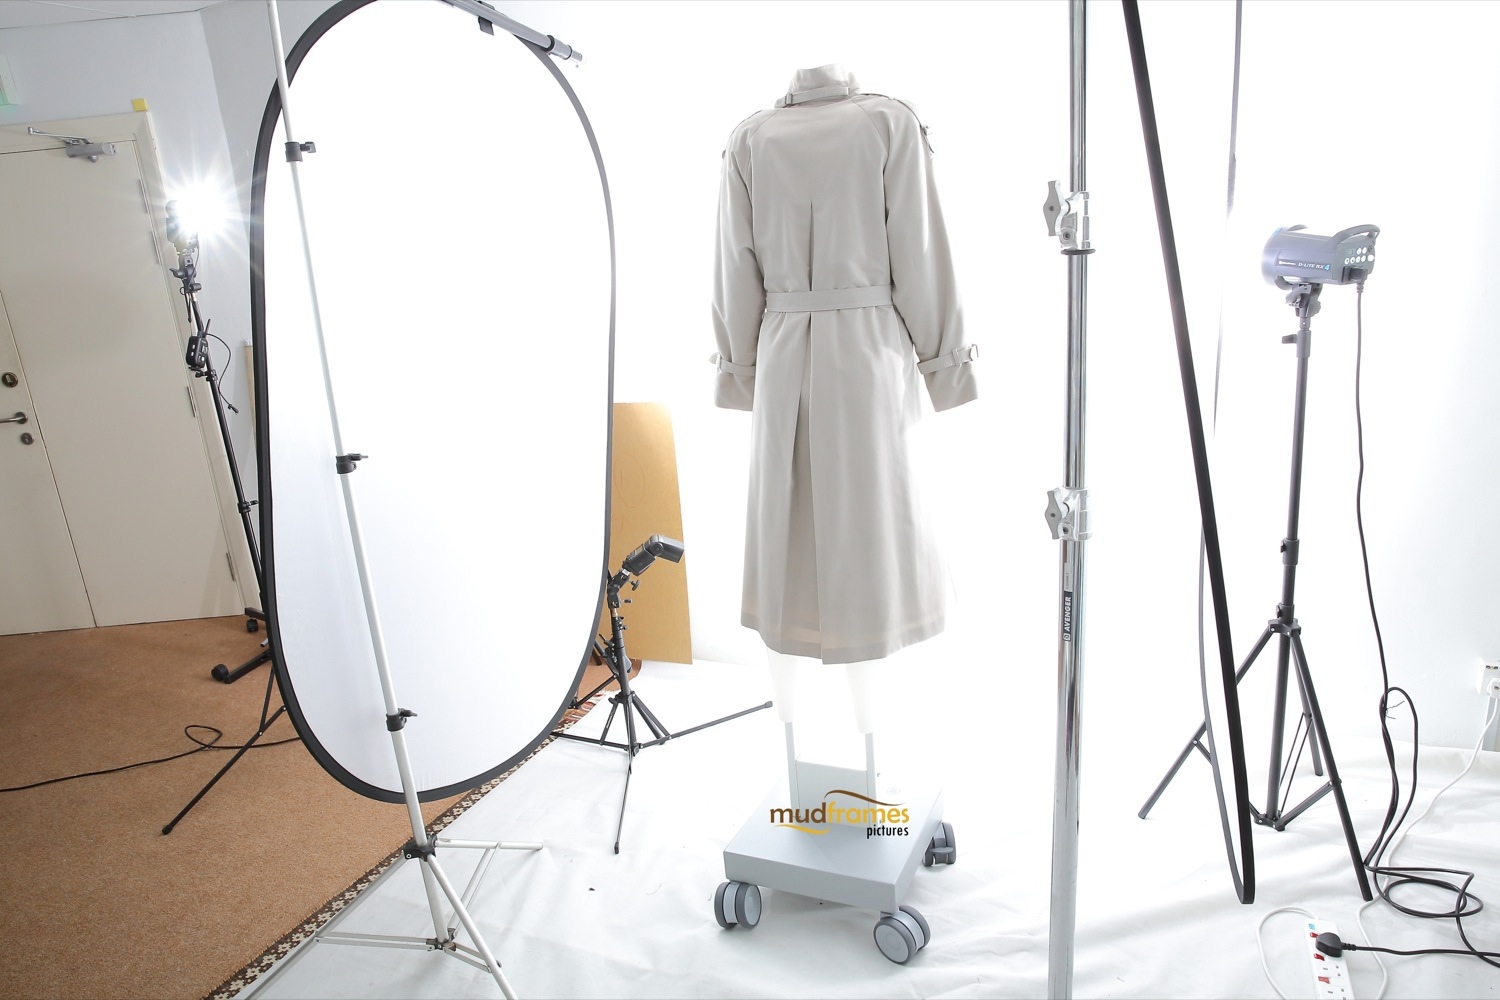 BTS: Invisible ghost mannequin style clothing photography on white background